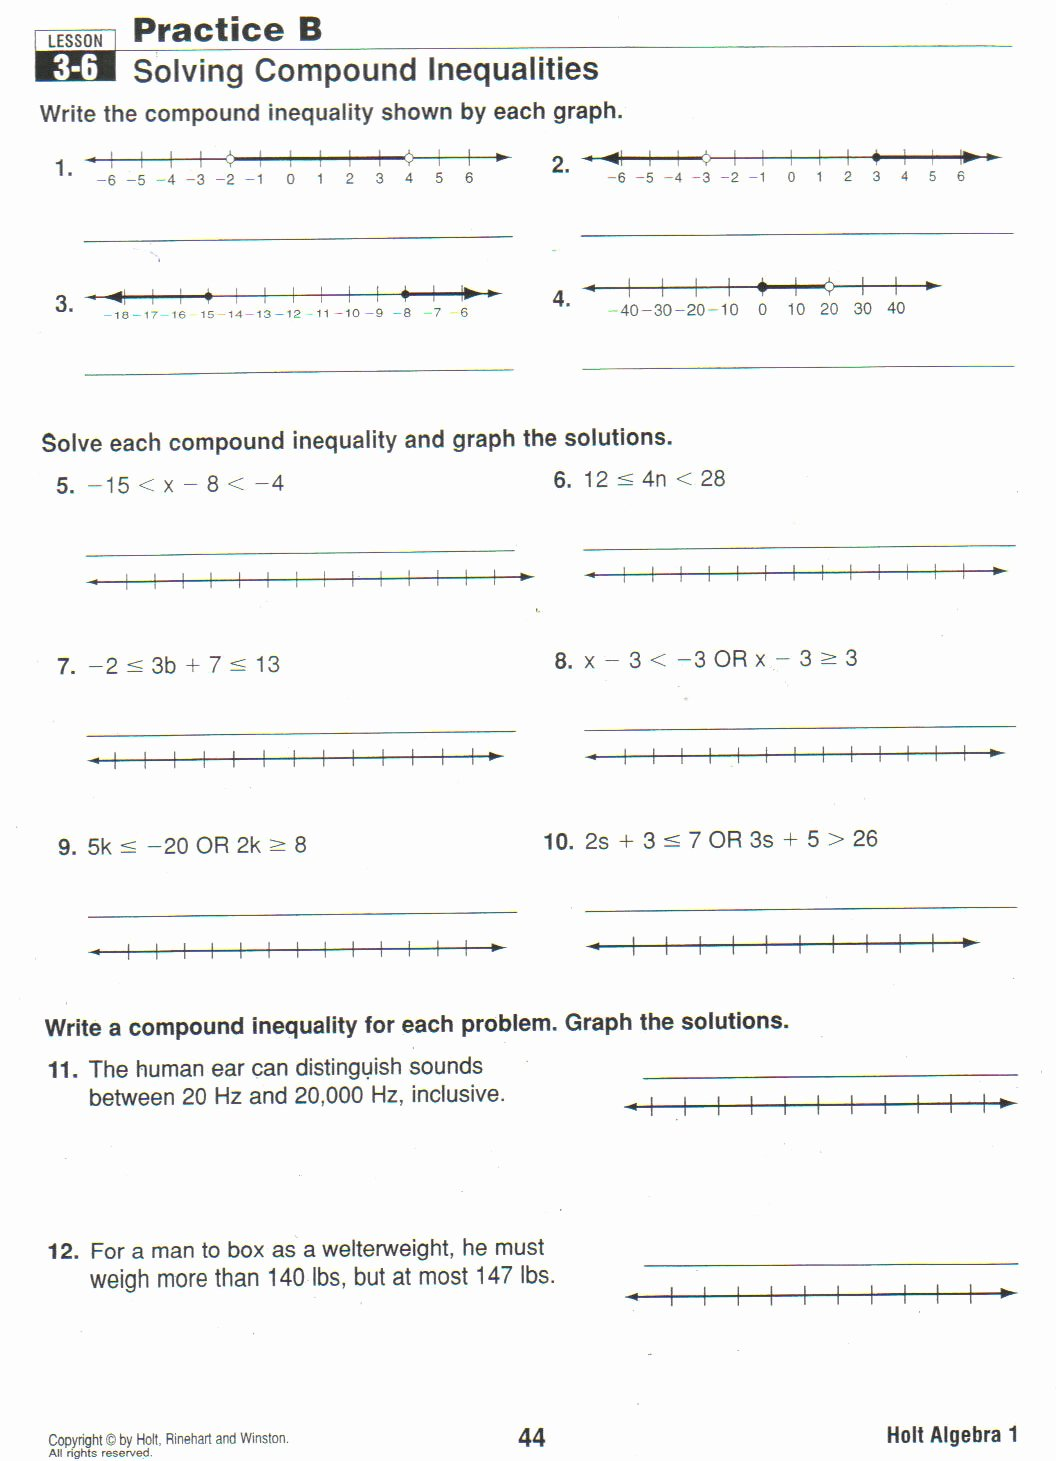 Solving Compound Inequalities Worksheet Awesome Learning Experience